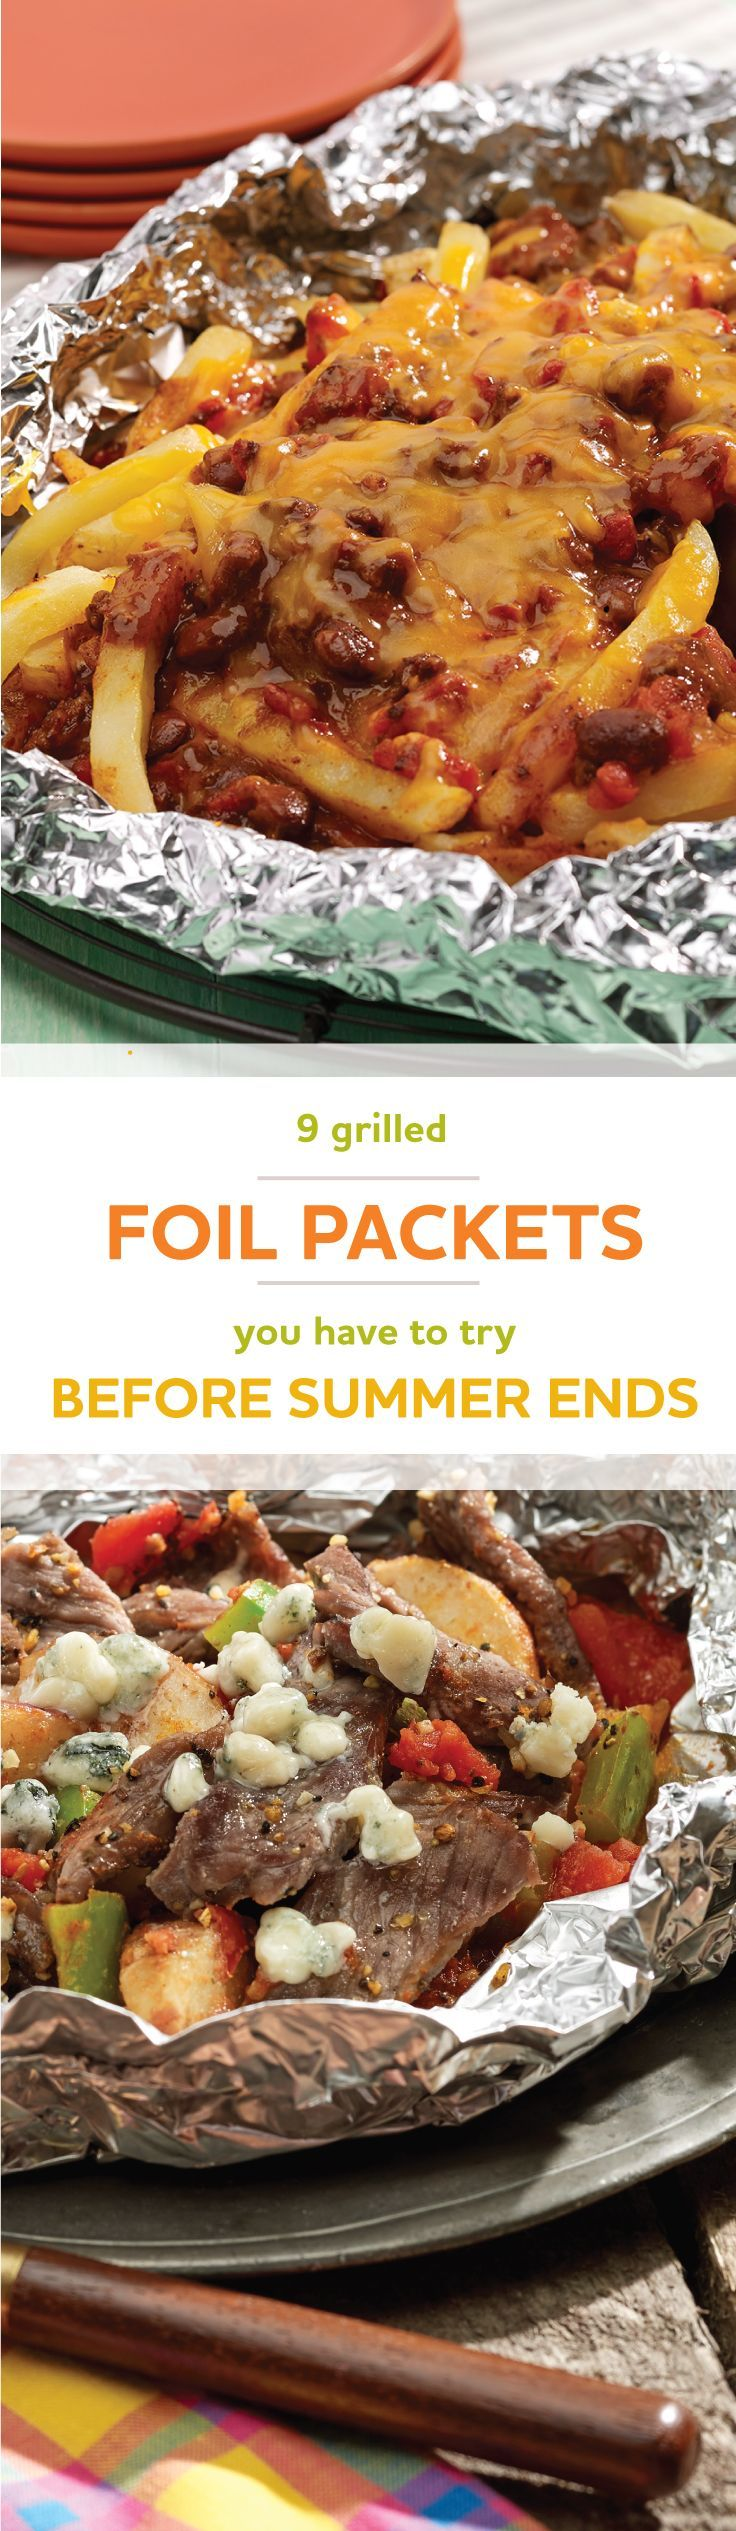 grilled foil packet frozen cheese fries fries grilling and cheese